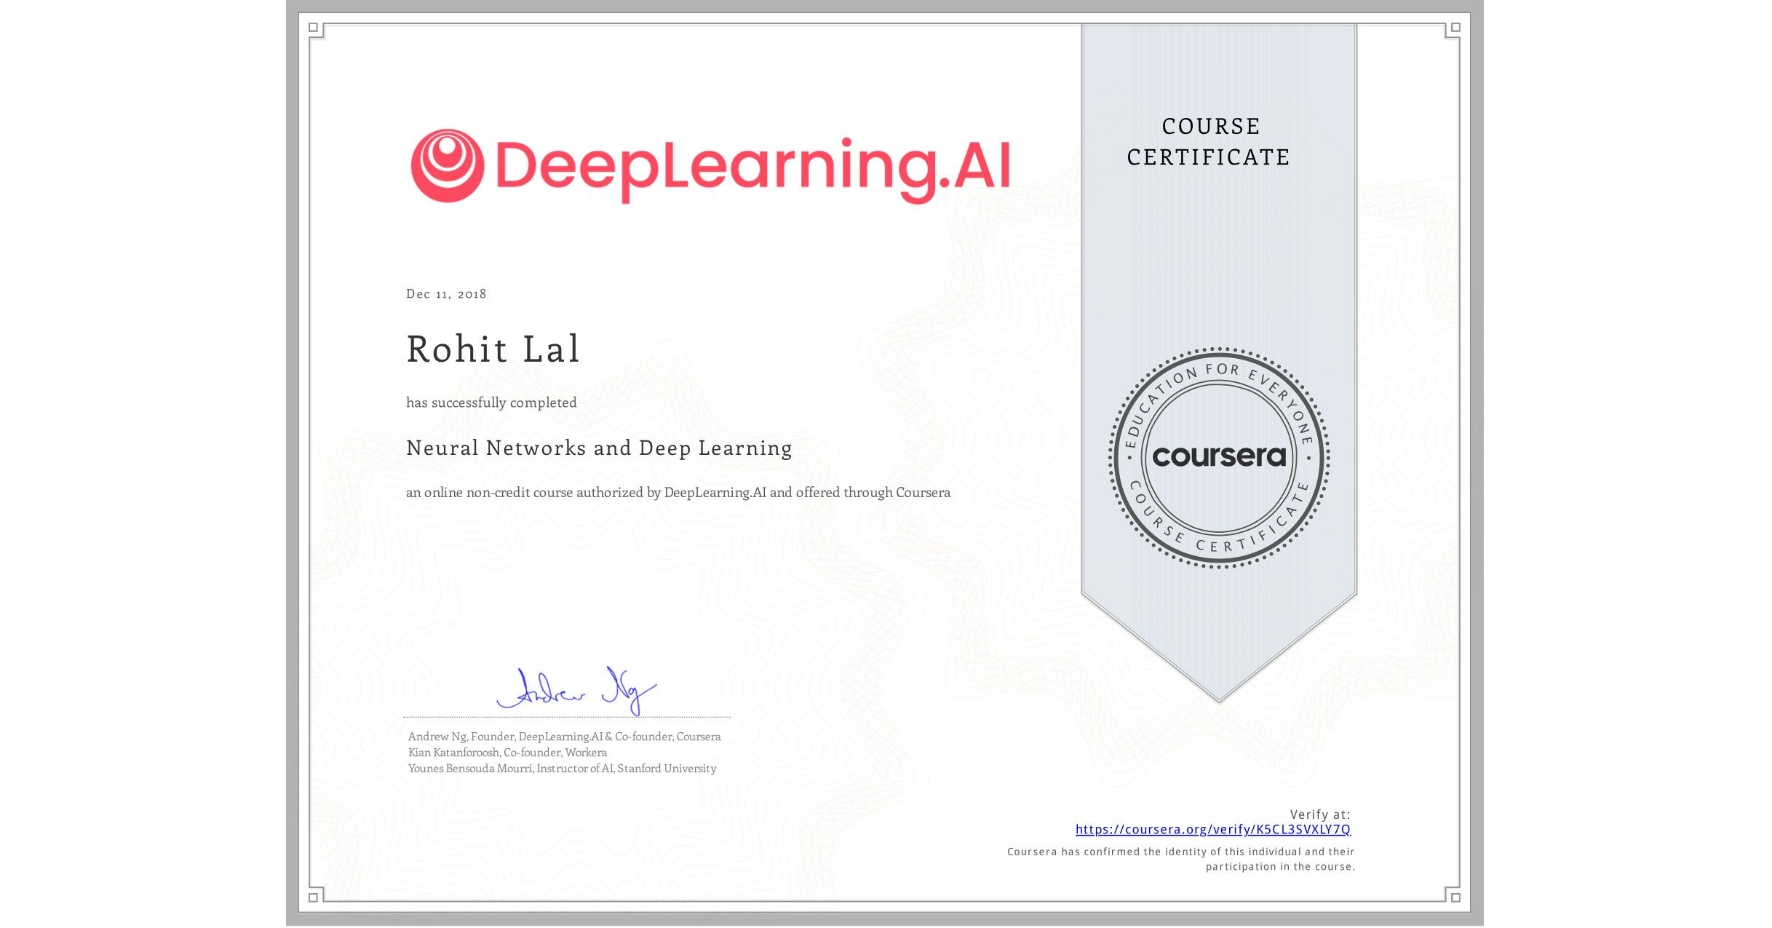 View certificate for Rohit Lal, Neural Networks and Deep Learning, an online non-credit course authorized by DeepLearning.AI and offered through Coursera